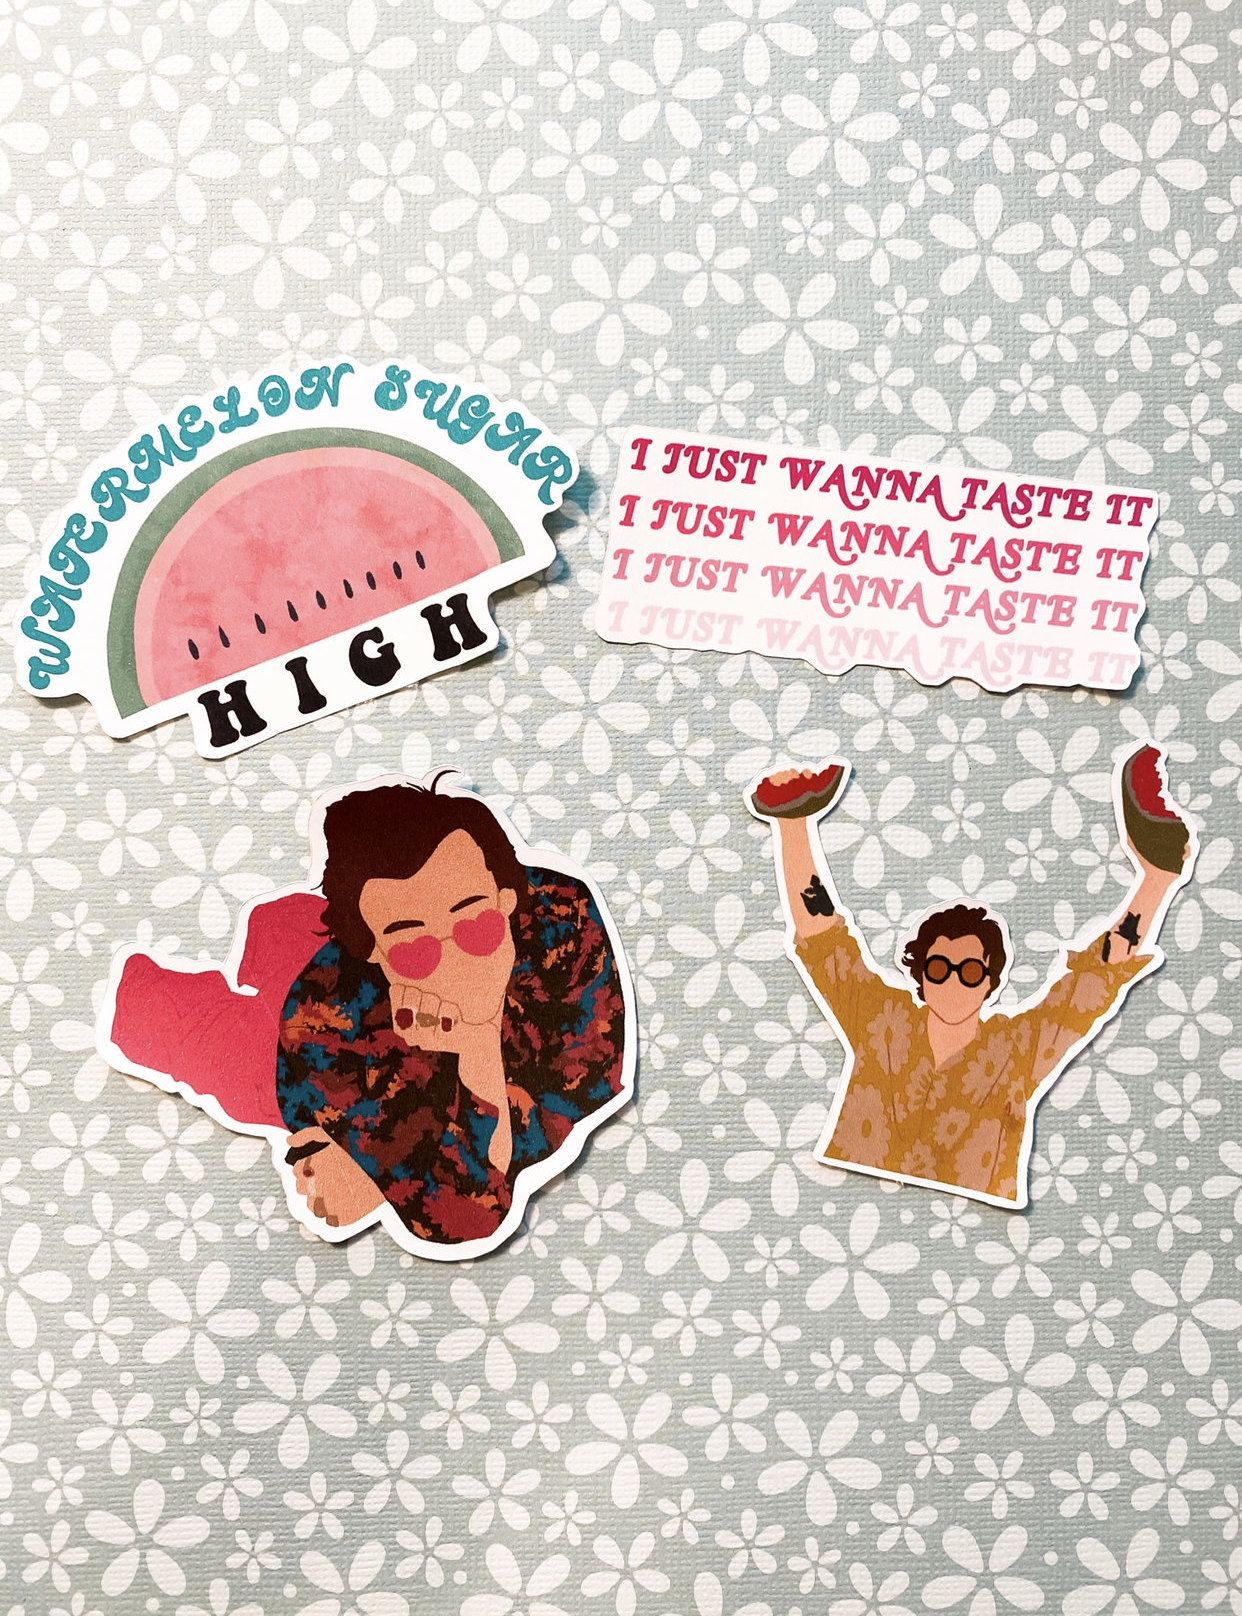 Excited To Share This Item From My Shop Harry Styles Watermelon Sugar Inspired Sticker Pack Harrystyles Harrystyles Harry Styles Harry Styles Pictures Harry